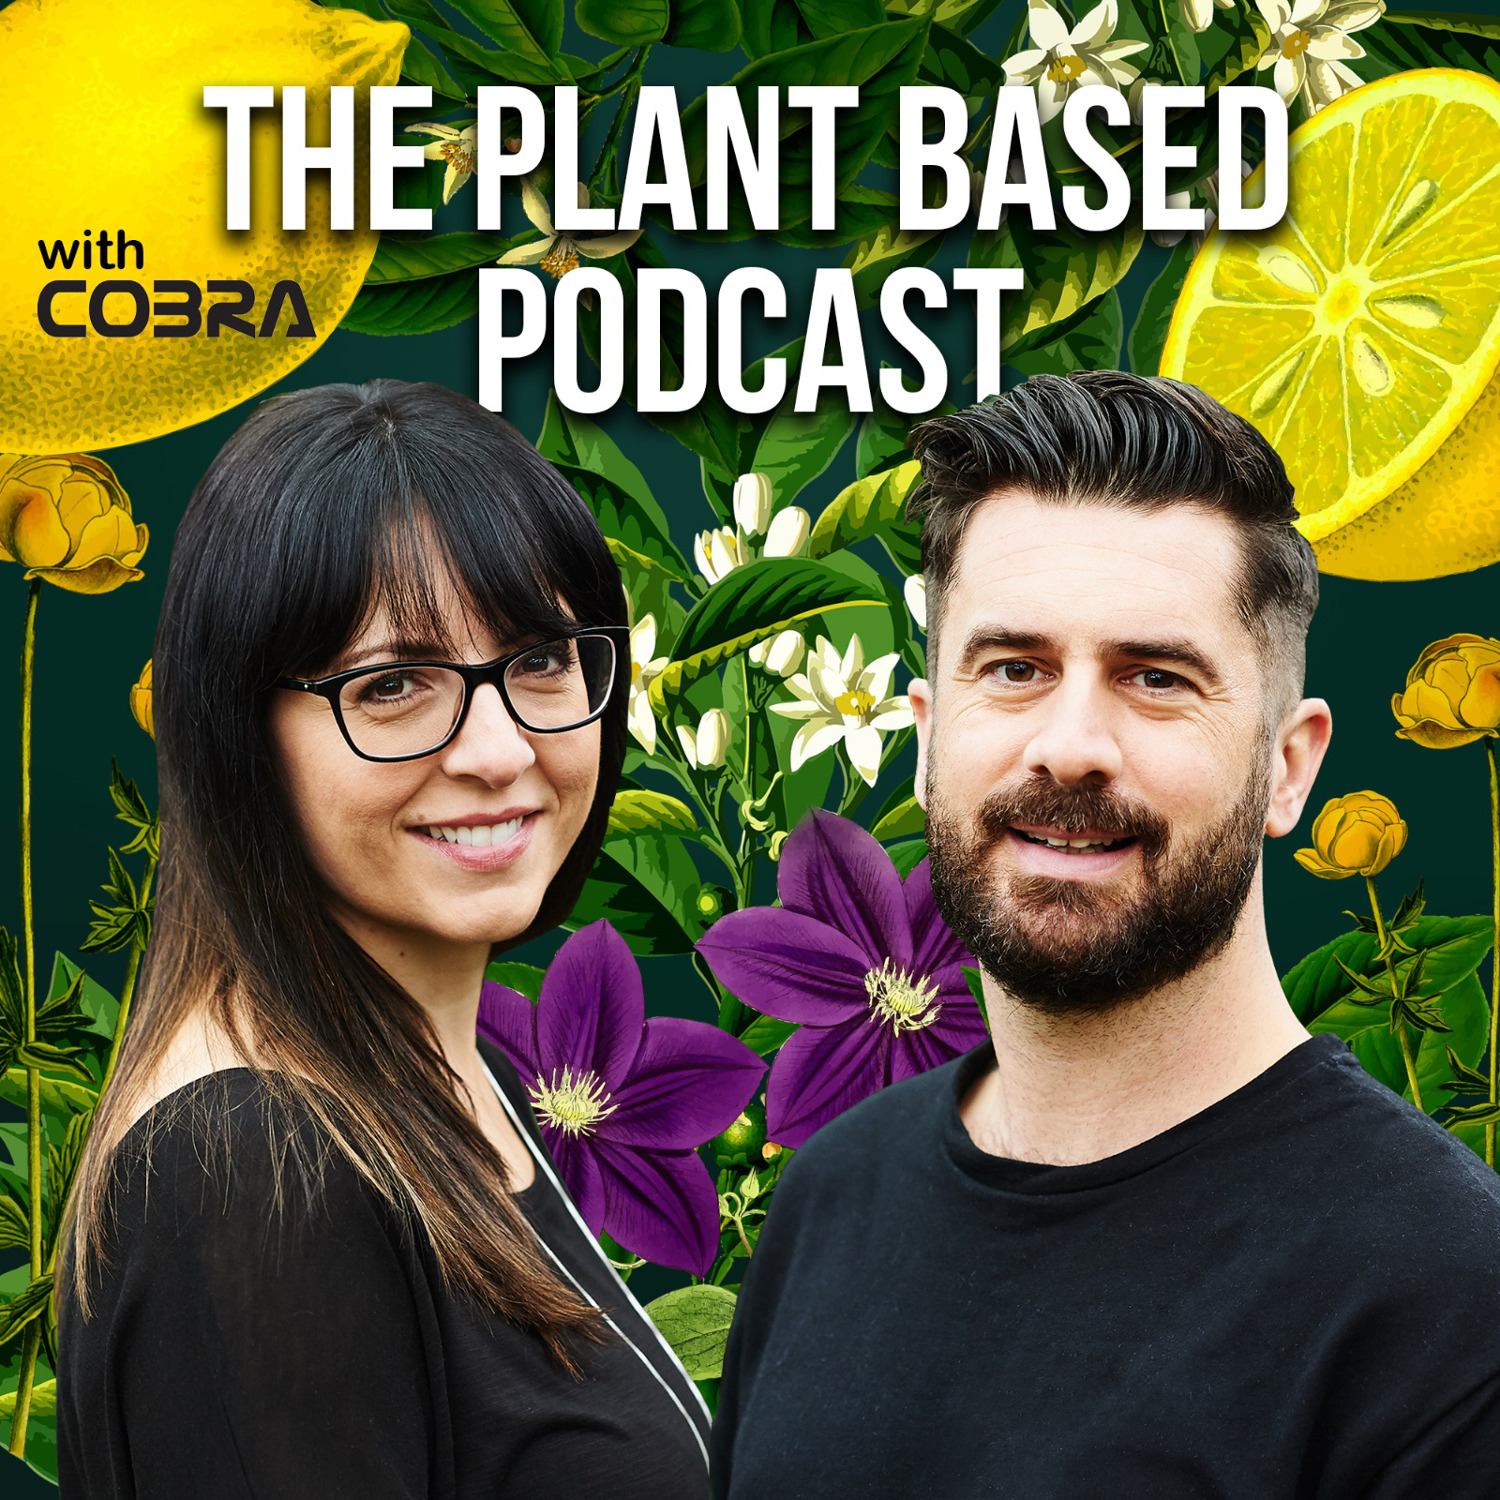 The Plant Based Podcast S4 - News 06/06/21